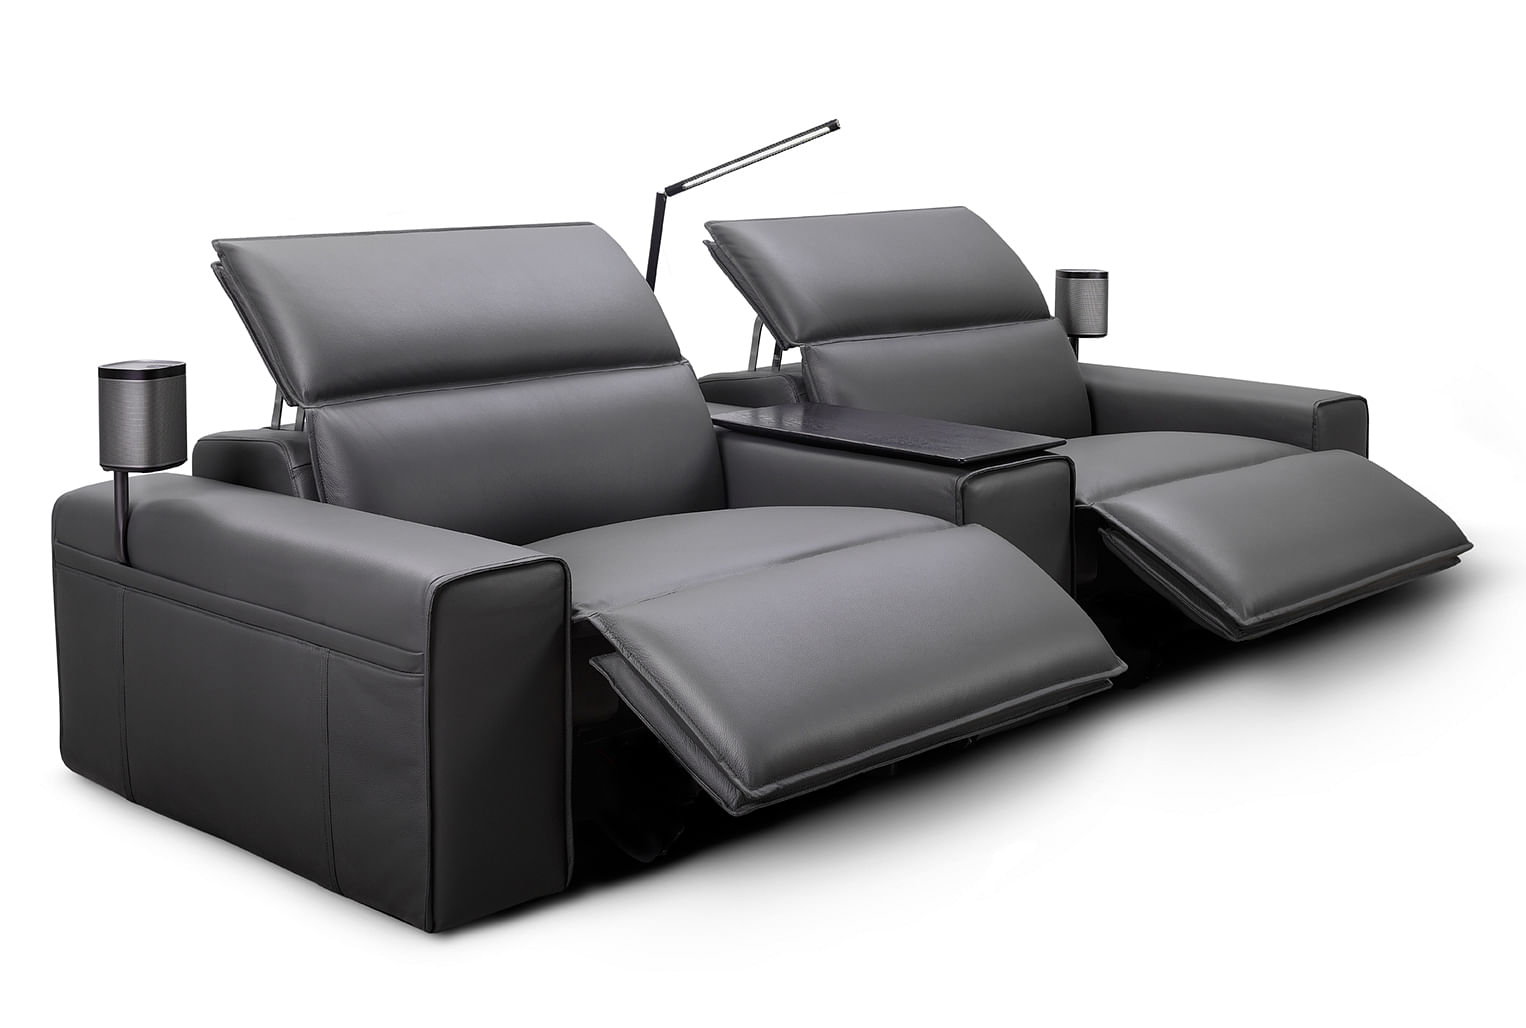 The Ultimate Recliner That Has A Stylish Contemporary Design And Smart Features Home Decor